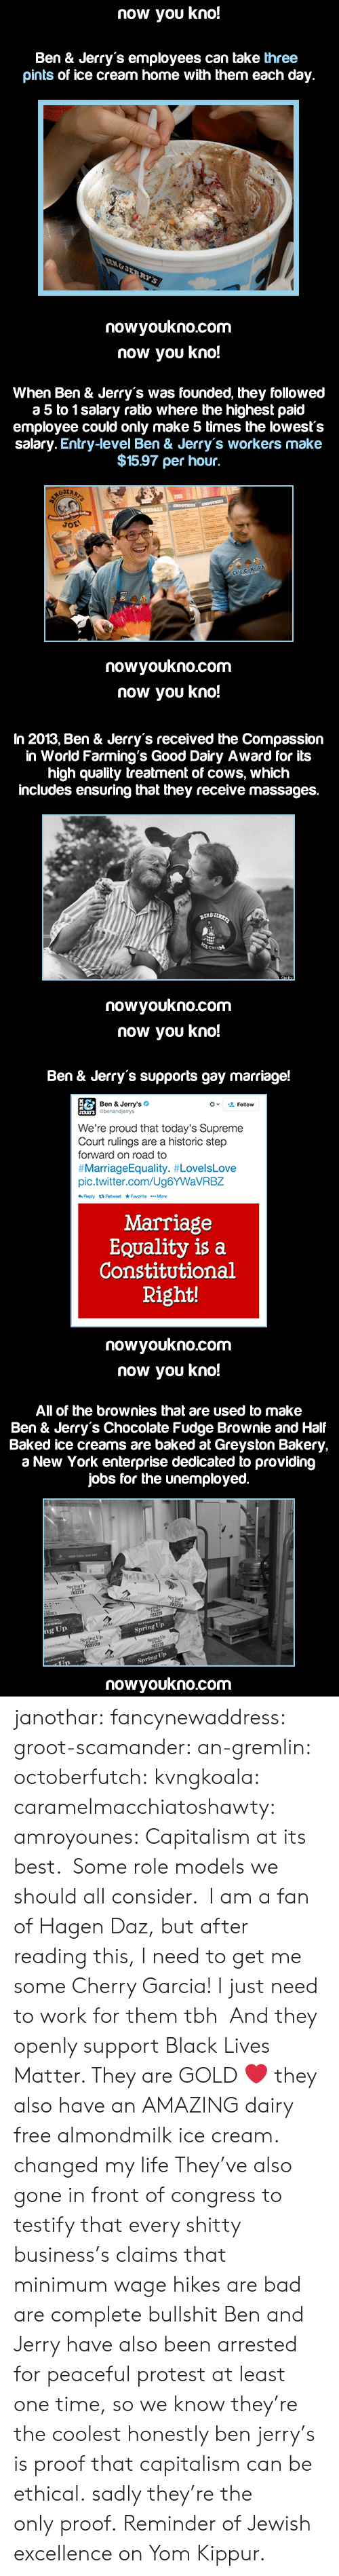 Constitutional: now you kno!  Ben & Jerry's employees can take three  pints of ice cream home with them each day.  nowyoukno.com   now you kno!  When Ben & Jerry's was founded, they followed  a 5 to 1 salary ratio where the highest paid  employee could only make 5 times the lowests  salary. Entry-level Ben & Jerry's workers make  $15.97 per hour.  JER  nowyoukno.com   now you kno!  In 2013, Ben & Jerry's received the Compassion  in World Farming's Good Dairy Award for its  high quality treatment of cows, which  includes ensuring that they receive massages.  nowyoukno.com   now you kno!  Ben & Jerry's supports gay marriage!  Ben & Jerry's  Gbenanderys  '오 Follow  We're proud that today's Supreme  Court rulings are a historic step  forward on road to  #MarriageEquality. #LovelsLove  pic.twitter.com/Ug6YWaVRBZ  Marriage  EQuality is a  Constitutional  Right!  nowyoukno.com   now you kno!  All of the brownies that are used to make  Ben & Jerry's Chocolate Fudge Brownie and Half  Baked ice creams are baked at Greyston Bakery,  a New York enterprise dedicated to providing  jobs for the unemployed.  ng Up  Spring Up  Spring Up  nowyoukno.com janothar: fancynewaddress:  groot-scamander:  an-gremlin:  octoberfutch:  kvngkoala:  caramelmacchiatoshawty:  amroyounes:  Capitalism at its best. Some role models we should all consider. I am a fan of Hagen Daz, but after reading this, I need to get me some Cherry Garcia!  I just need to work for them tbh  And they openly support Black Lives Matter. They are GOLD ❤️  they also have an AMAZING dairy free almondmilk ice cream. changed my life  They've also gone in front of congress to testify that every shitty business's claims that minimum wage hikes are bad are complete bullshit   Ben and Jerry have also been arrested for peaceful protest at least one time, so we know they're the coolest  honestly ben  jerry's is proof that capitalism can be ethical. sadly they're the onlyproof.  Reminder of Jewish excellence on Yom Kippur.